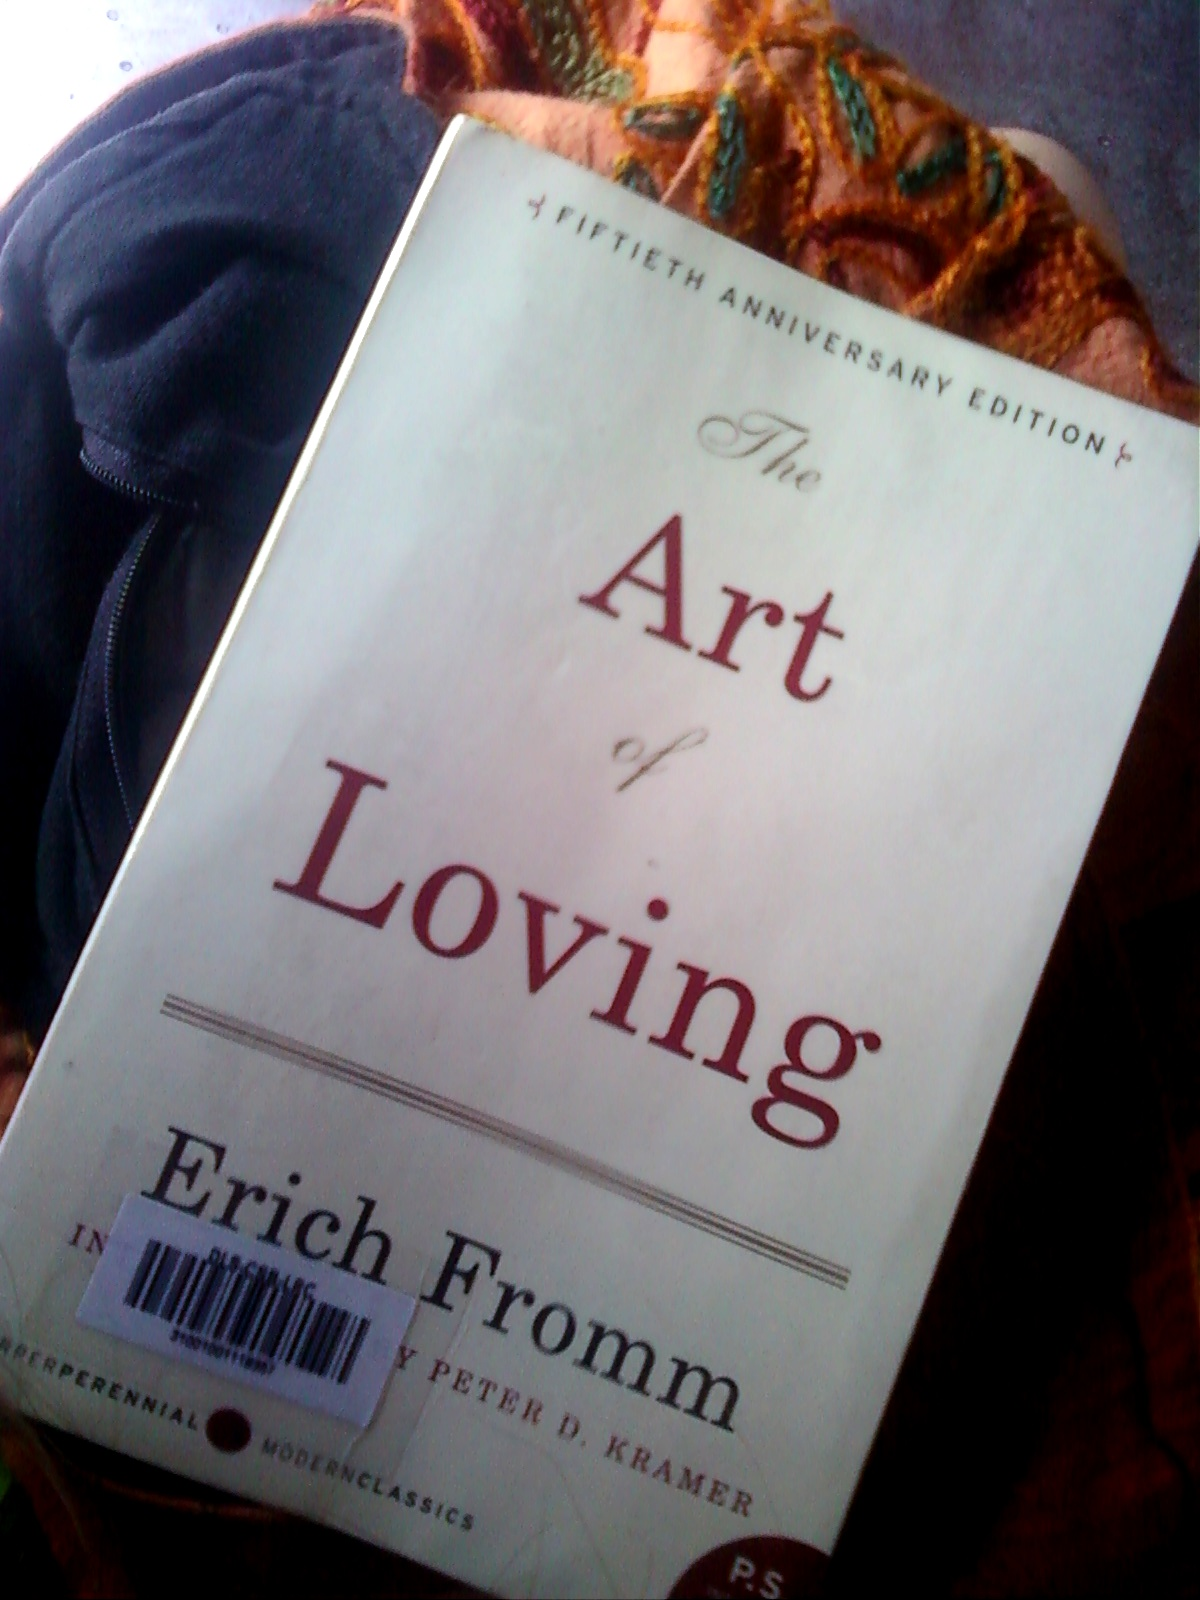 erich fromms the art of loving The art of loving, erich fromm the art of loving is a 1956 book by psychoanalyst and social philosopher erich fromm, which was published as part of the world perspectives series edited by ruth nanda anshen.